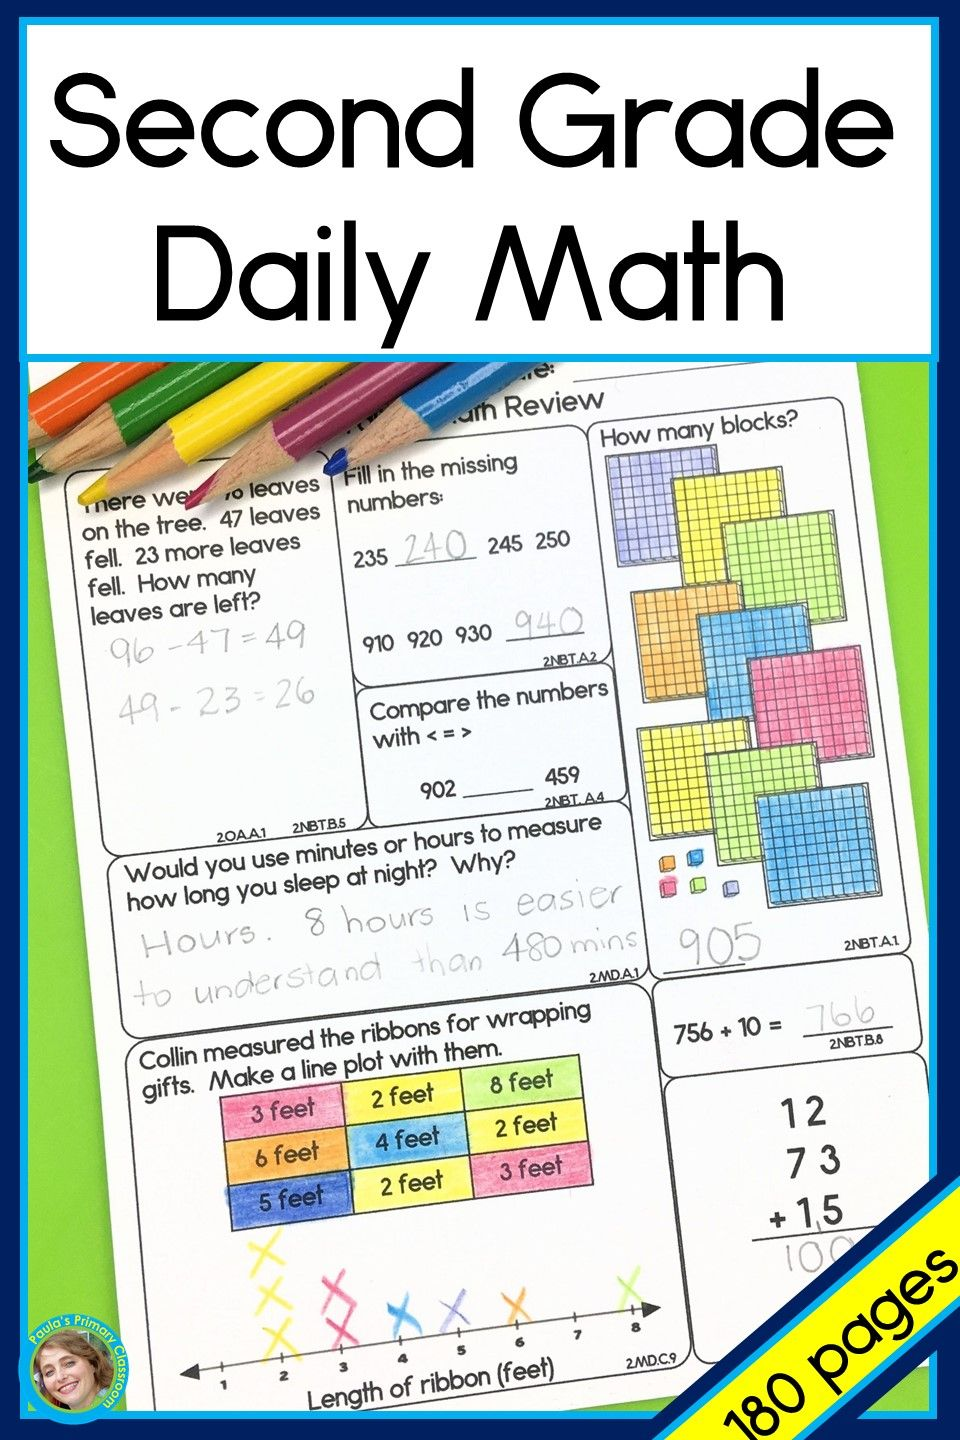 small resolution of Second Grade Daily Math spiraling year long curriculum covering Common Core  State Standards   Daily math